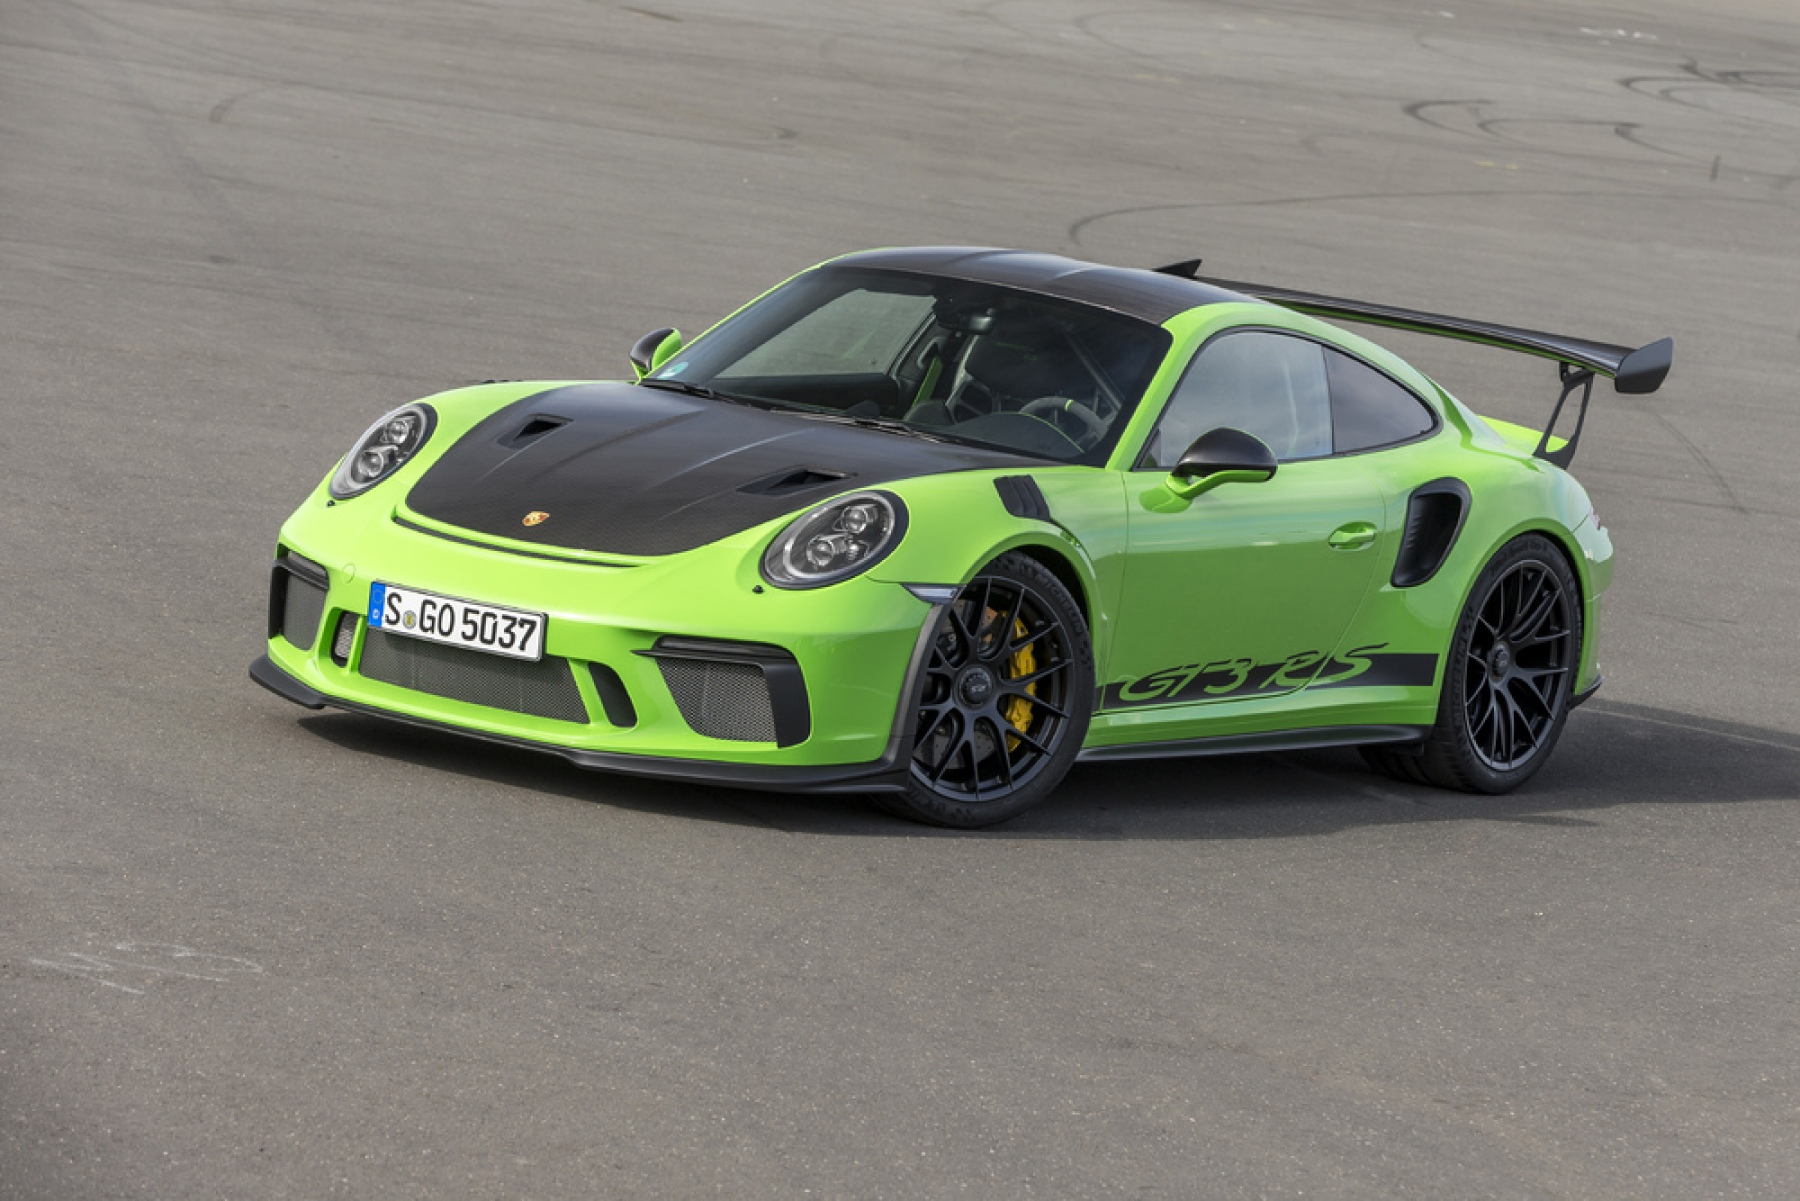 911 gt3 rs with weissach package  lizard green